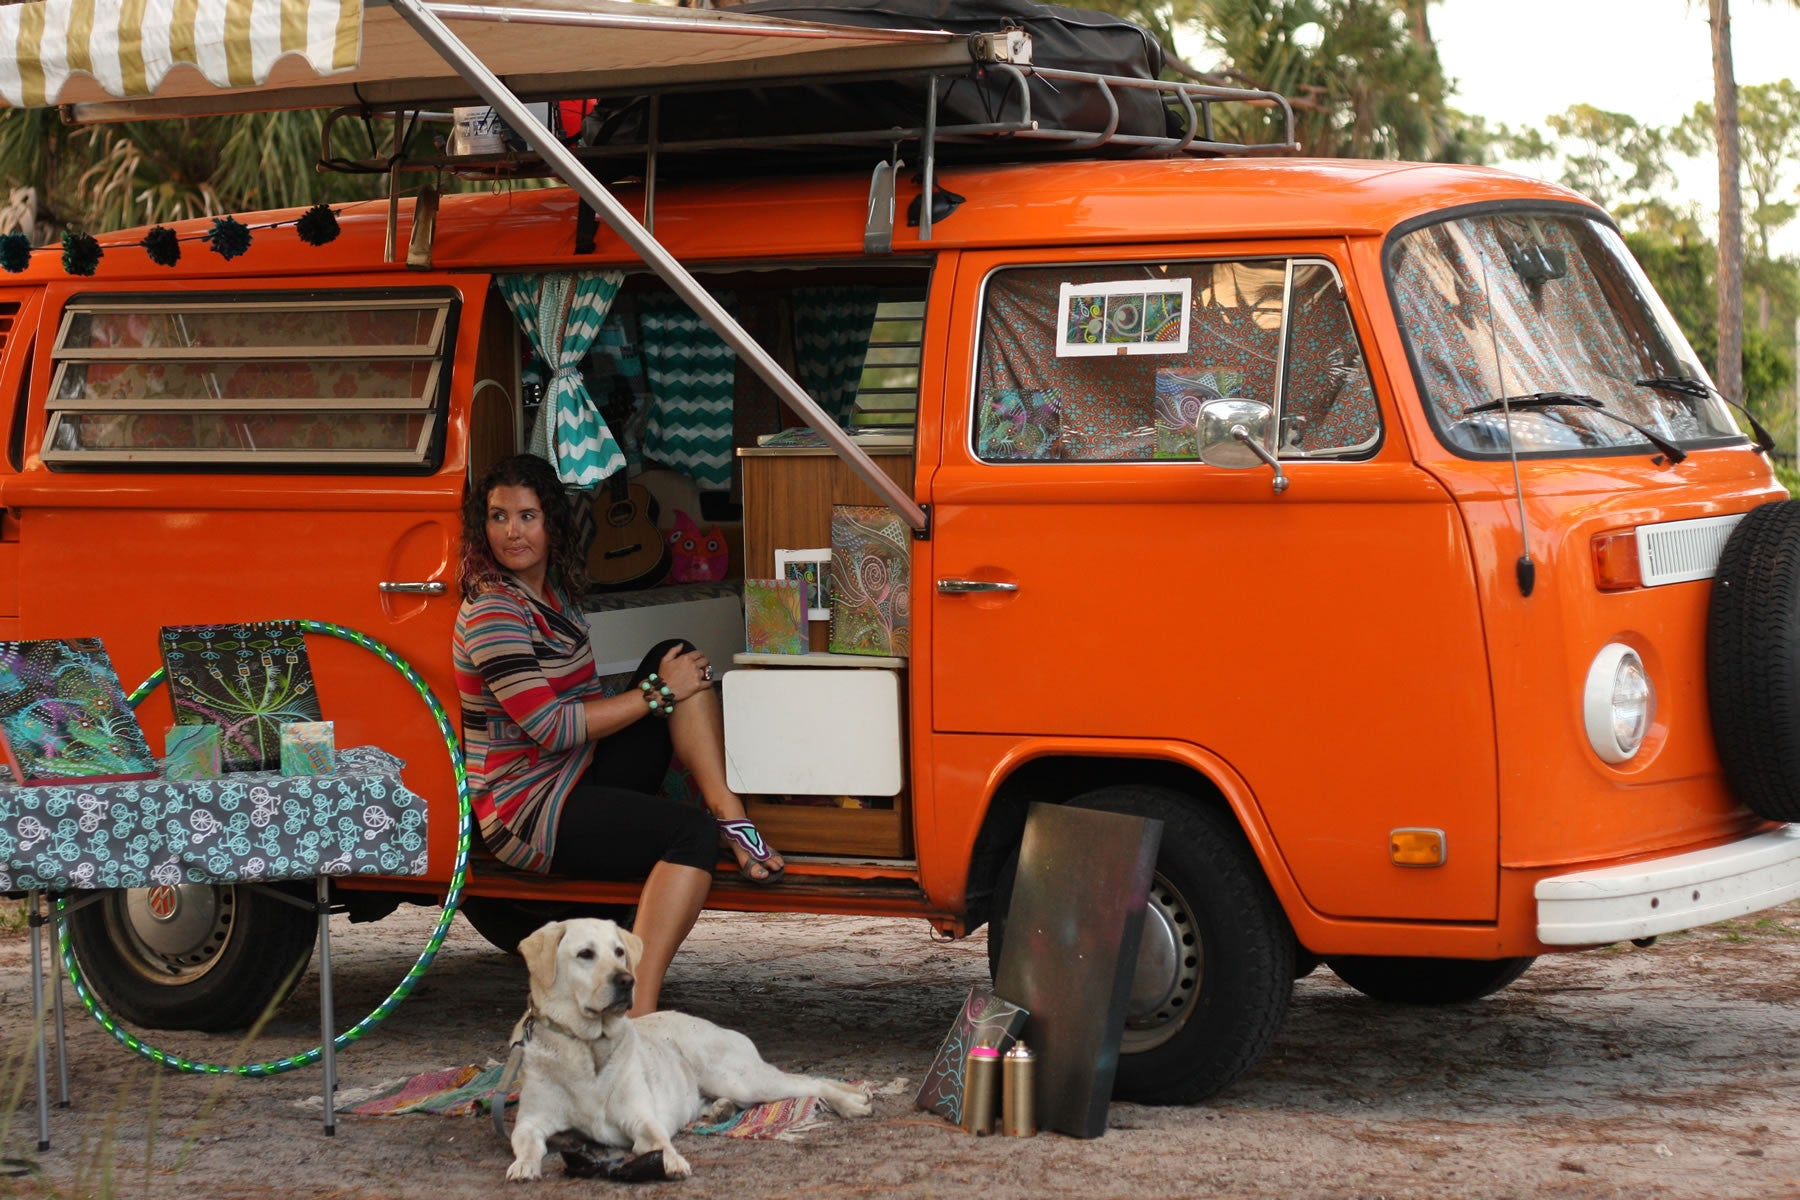 Mallory and Baylor hang out in her orange camper van.